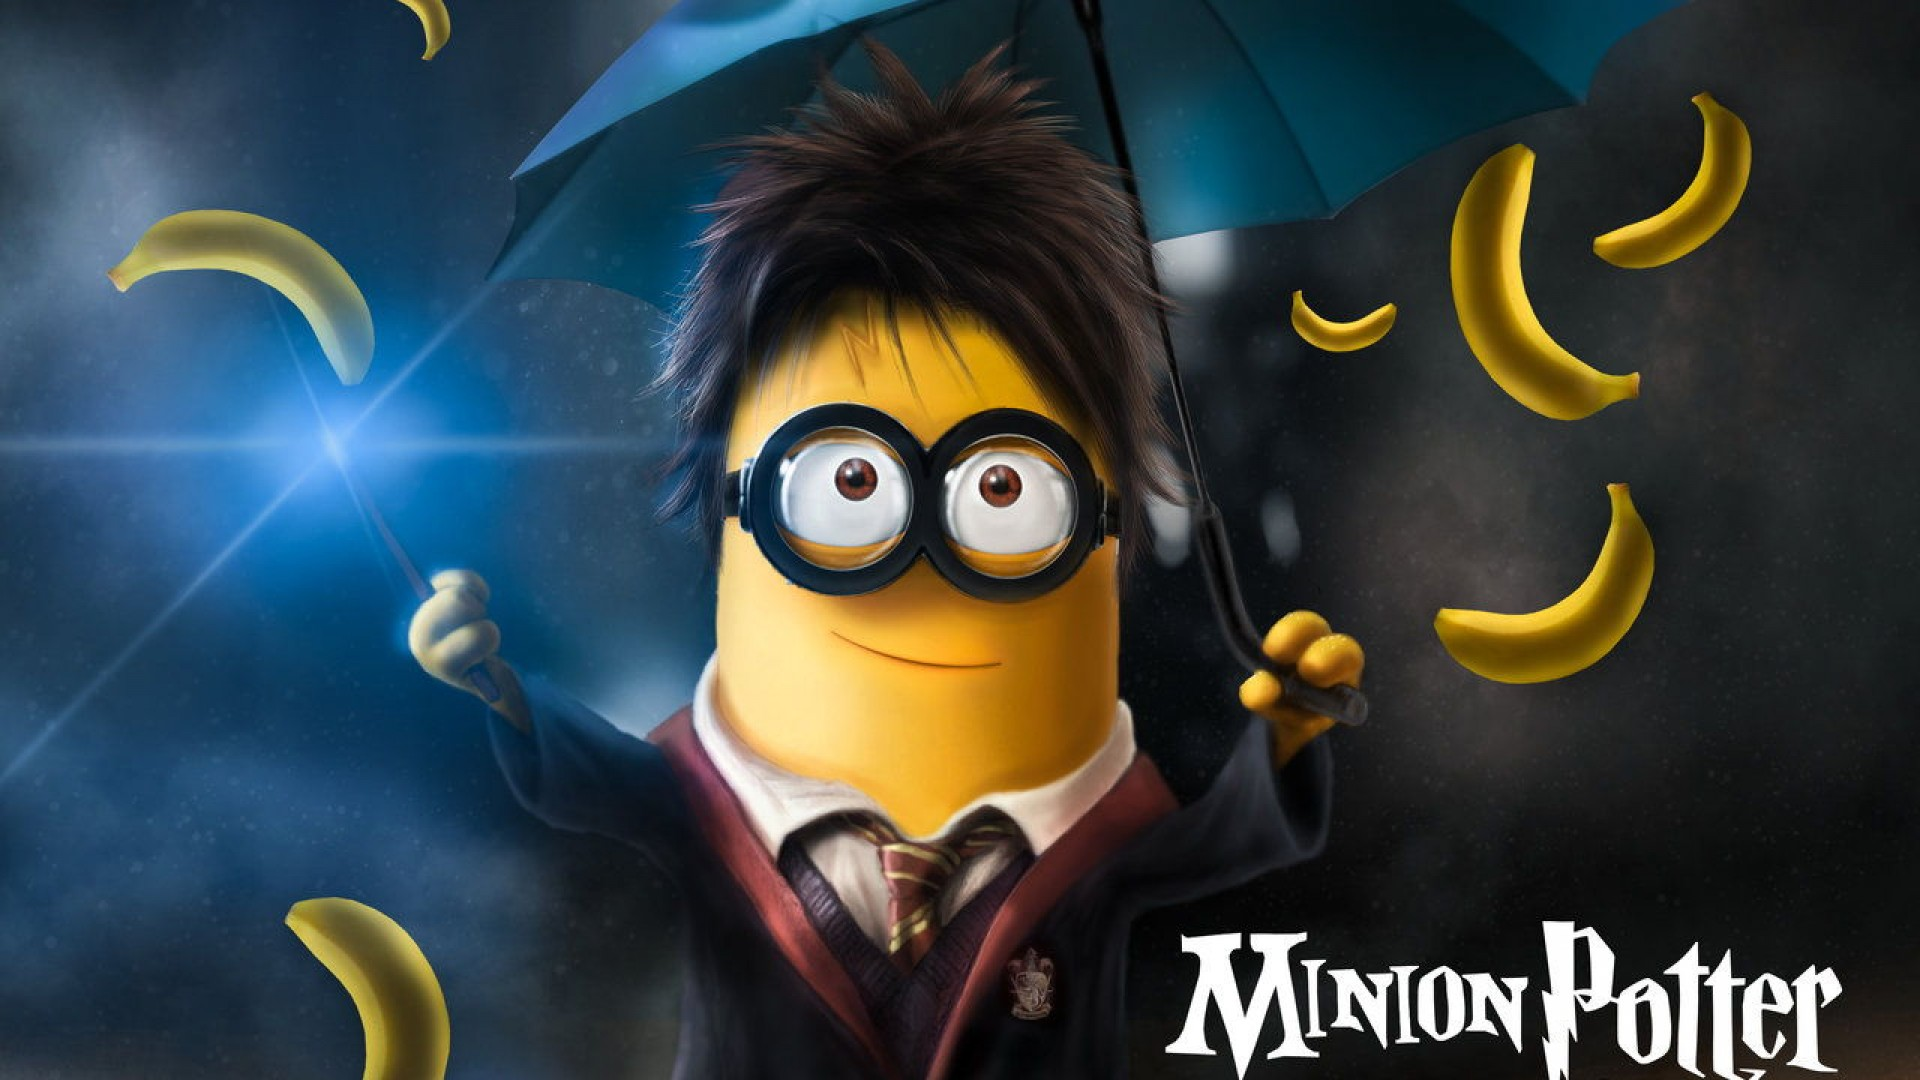 minion-wallpapers-hd-resolution | wallpaper.wiki